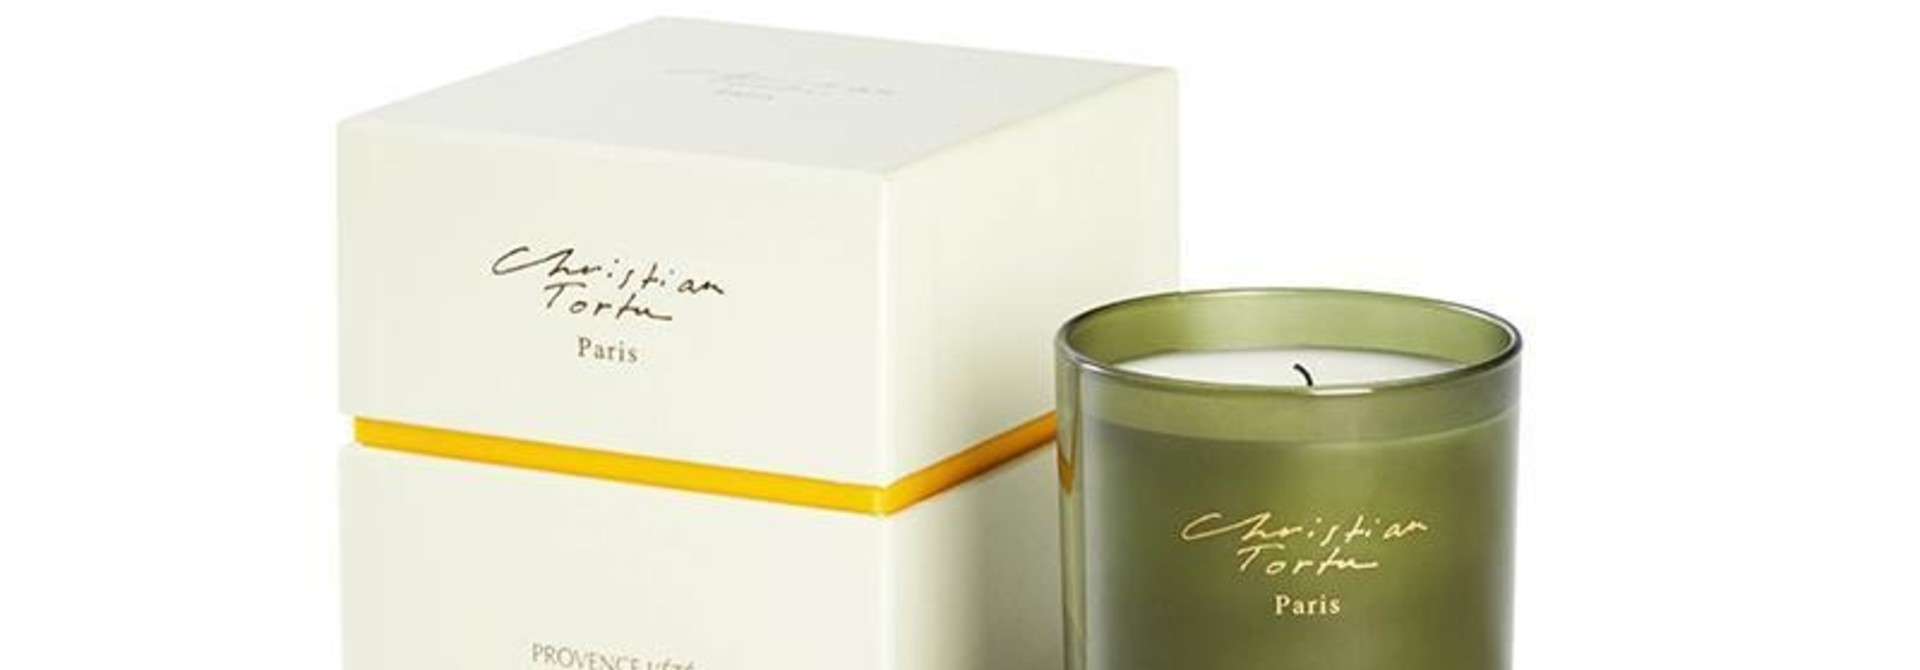 Provence l'Ete - Scented Candle